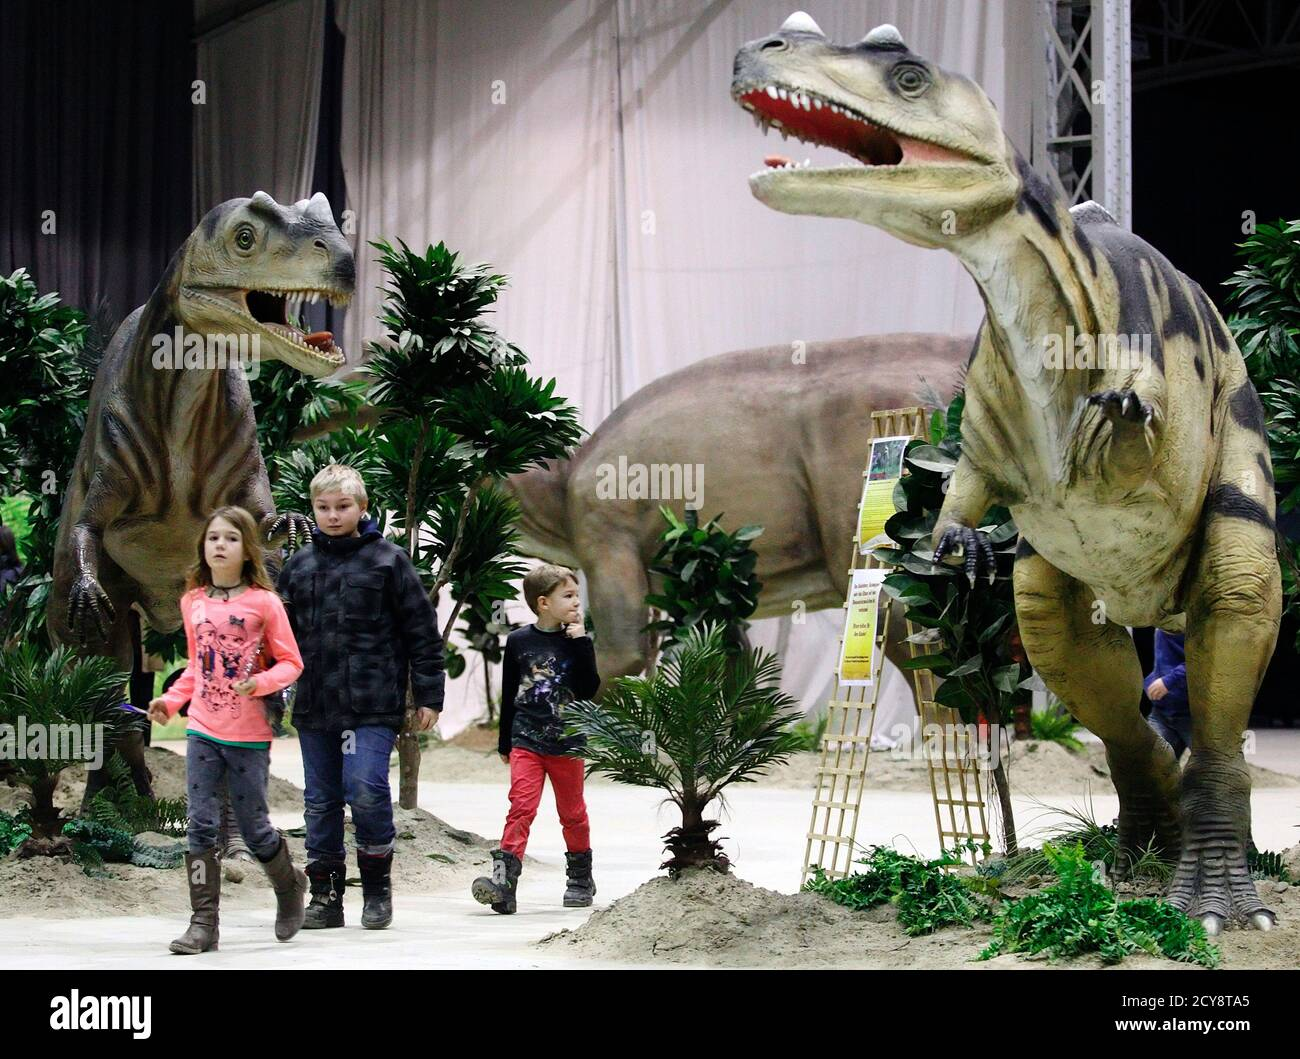 """Children walk by life-sized Ceratosaurus dinosaur models in Vienna February 7, 2014. The travelling exhibition """"World of Dinosaurs"""" shows some 50 life-sized dinosaur models and runs in Vienna until February 23. REUTERS/Heinz-Peter Bader  (AUSTRIA - Tags: SCIENCE TECHNOLOGY SOCIETY) Banque D'Images"""